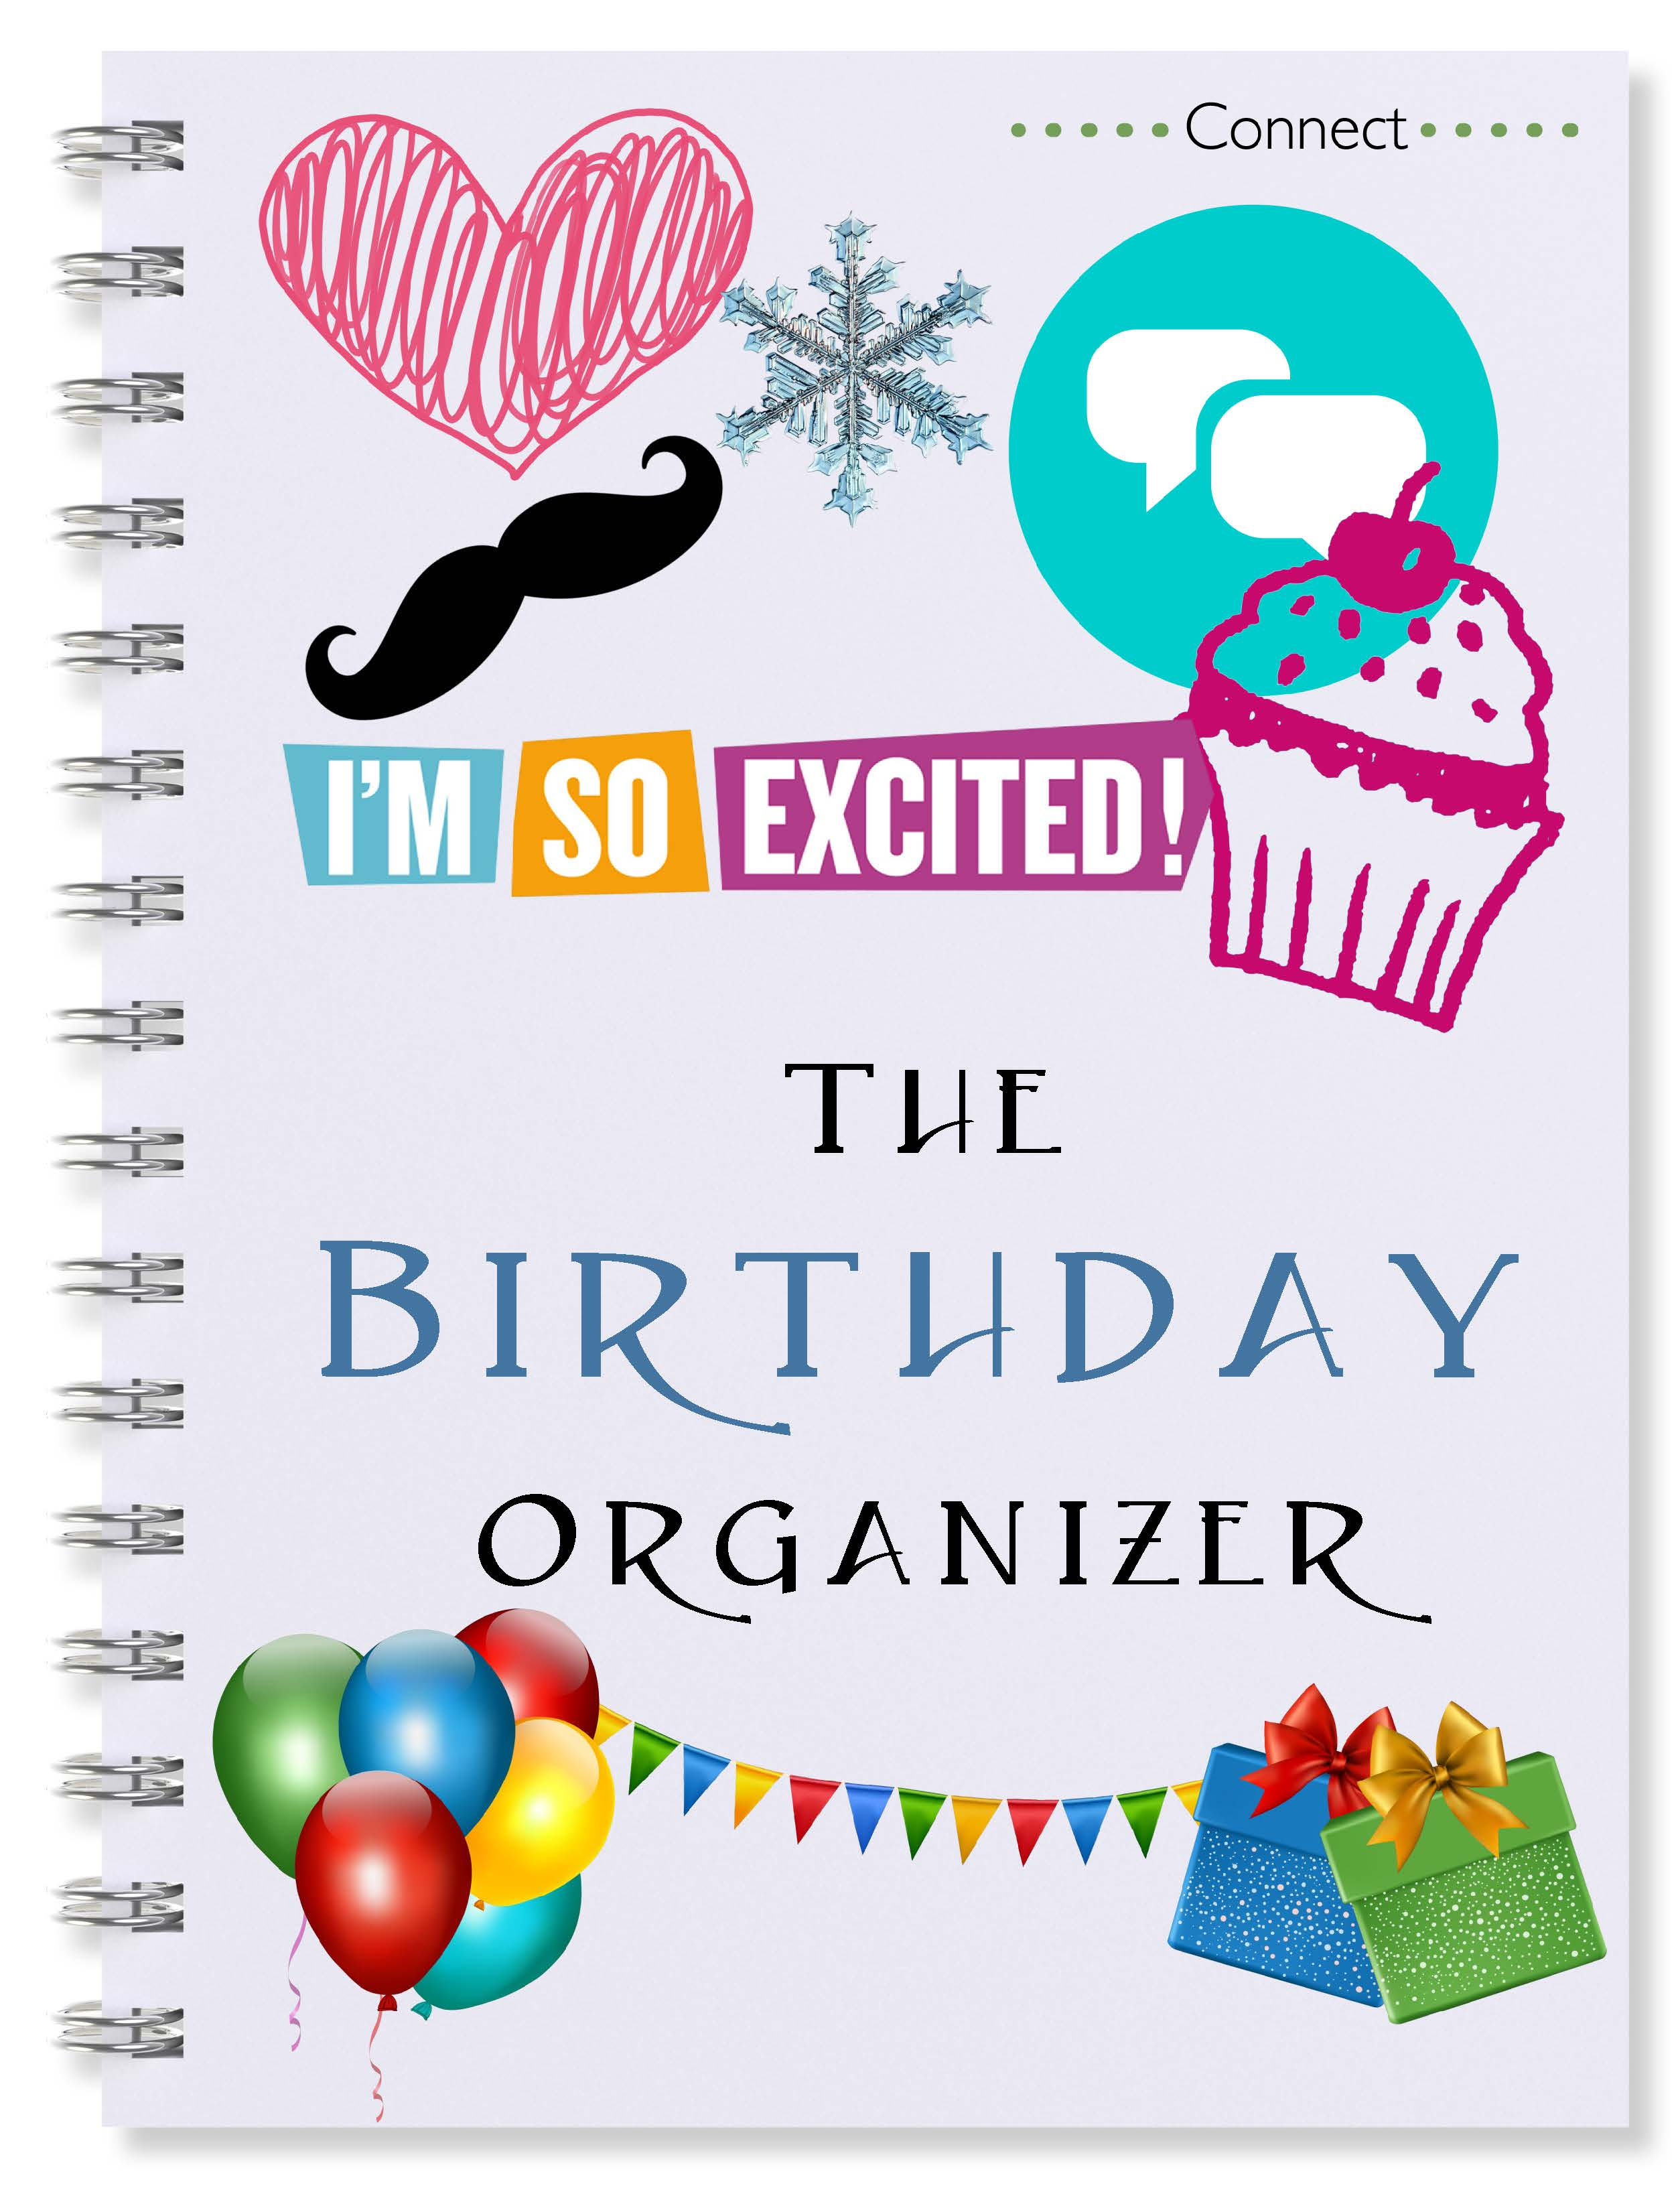 Free Birthday Party Reminder Cards: Just sweet and simple little ...